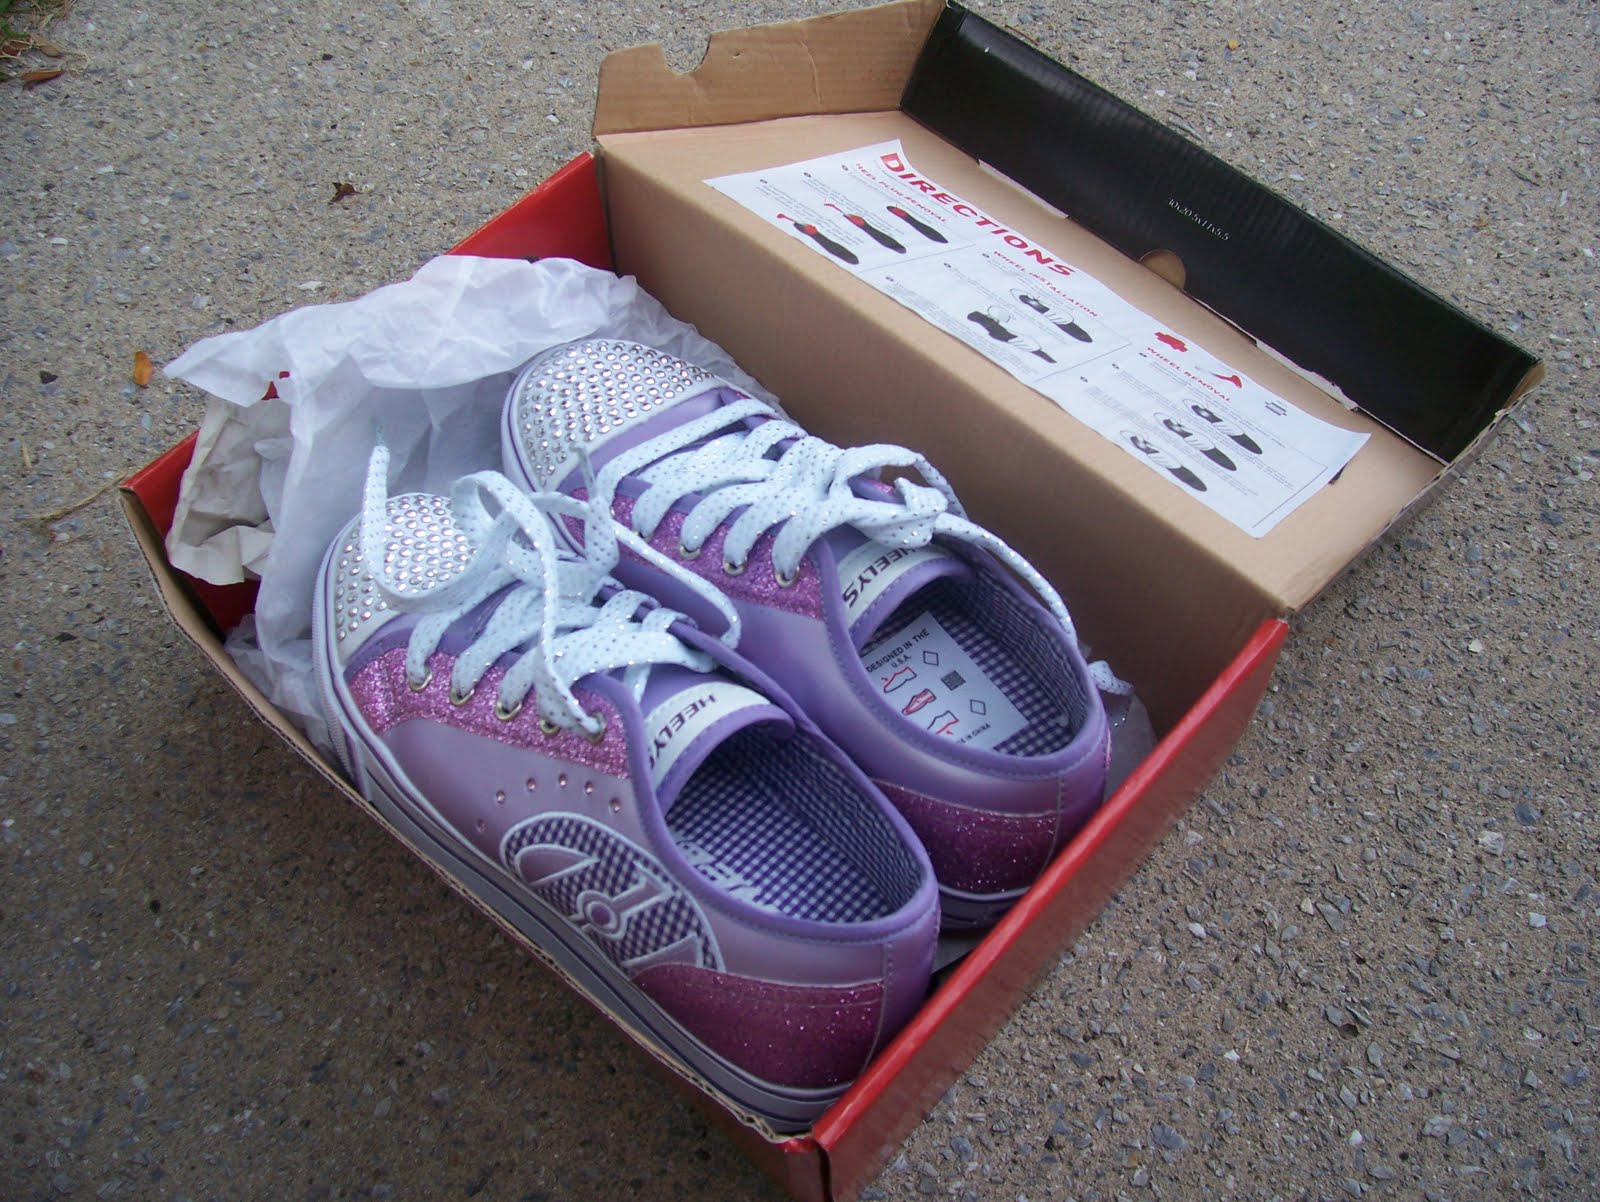 Heely skate shoes reviews - I Chose Heelys Sassy Skate Shoes Very Pretty Lots Of Bling They Are Pink Purple Pearlized Synthetic Leather With Glitter Accents And Rhinestones